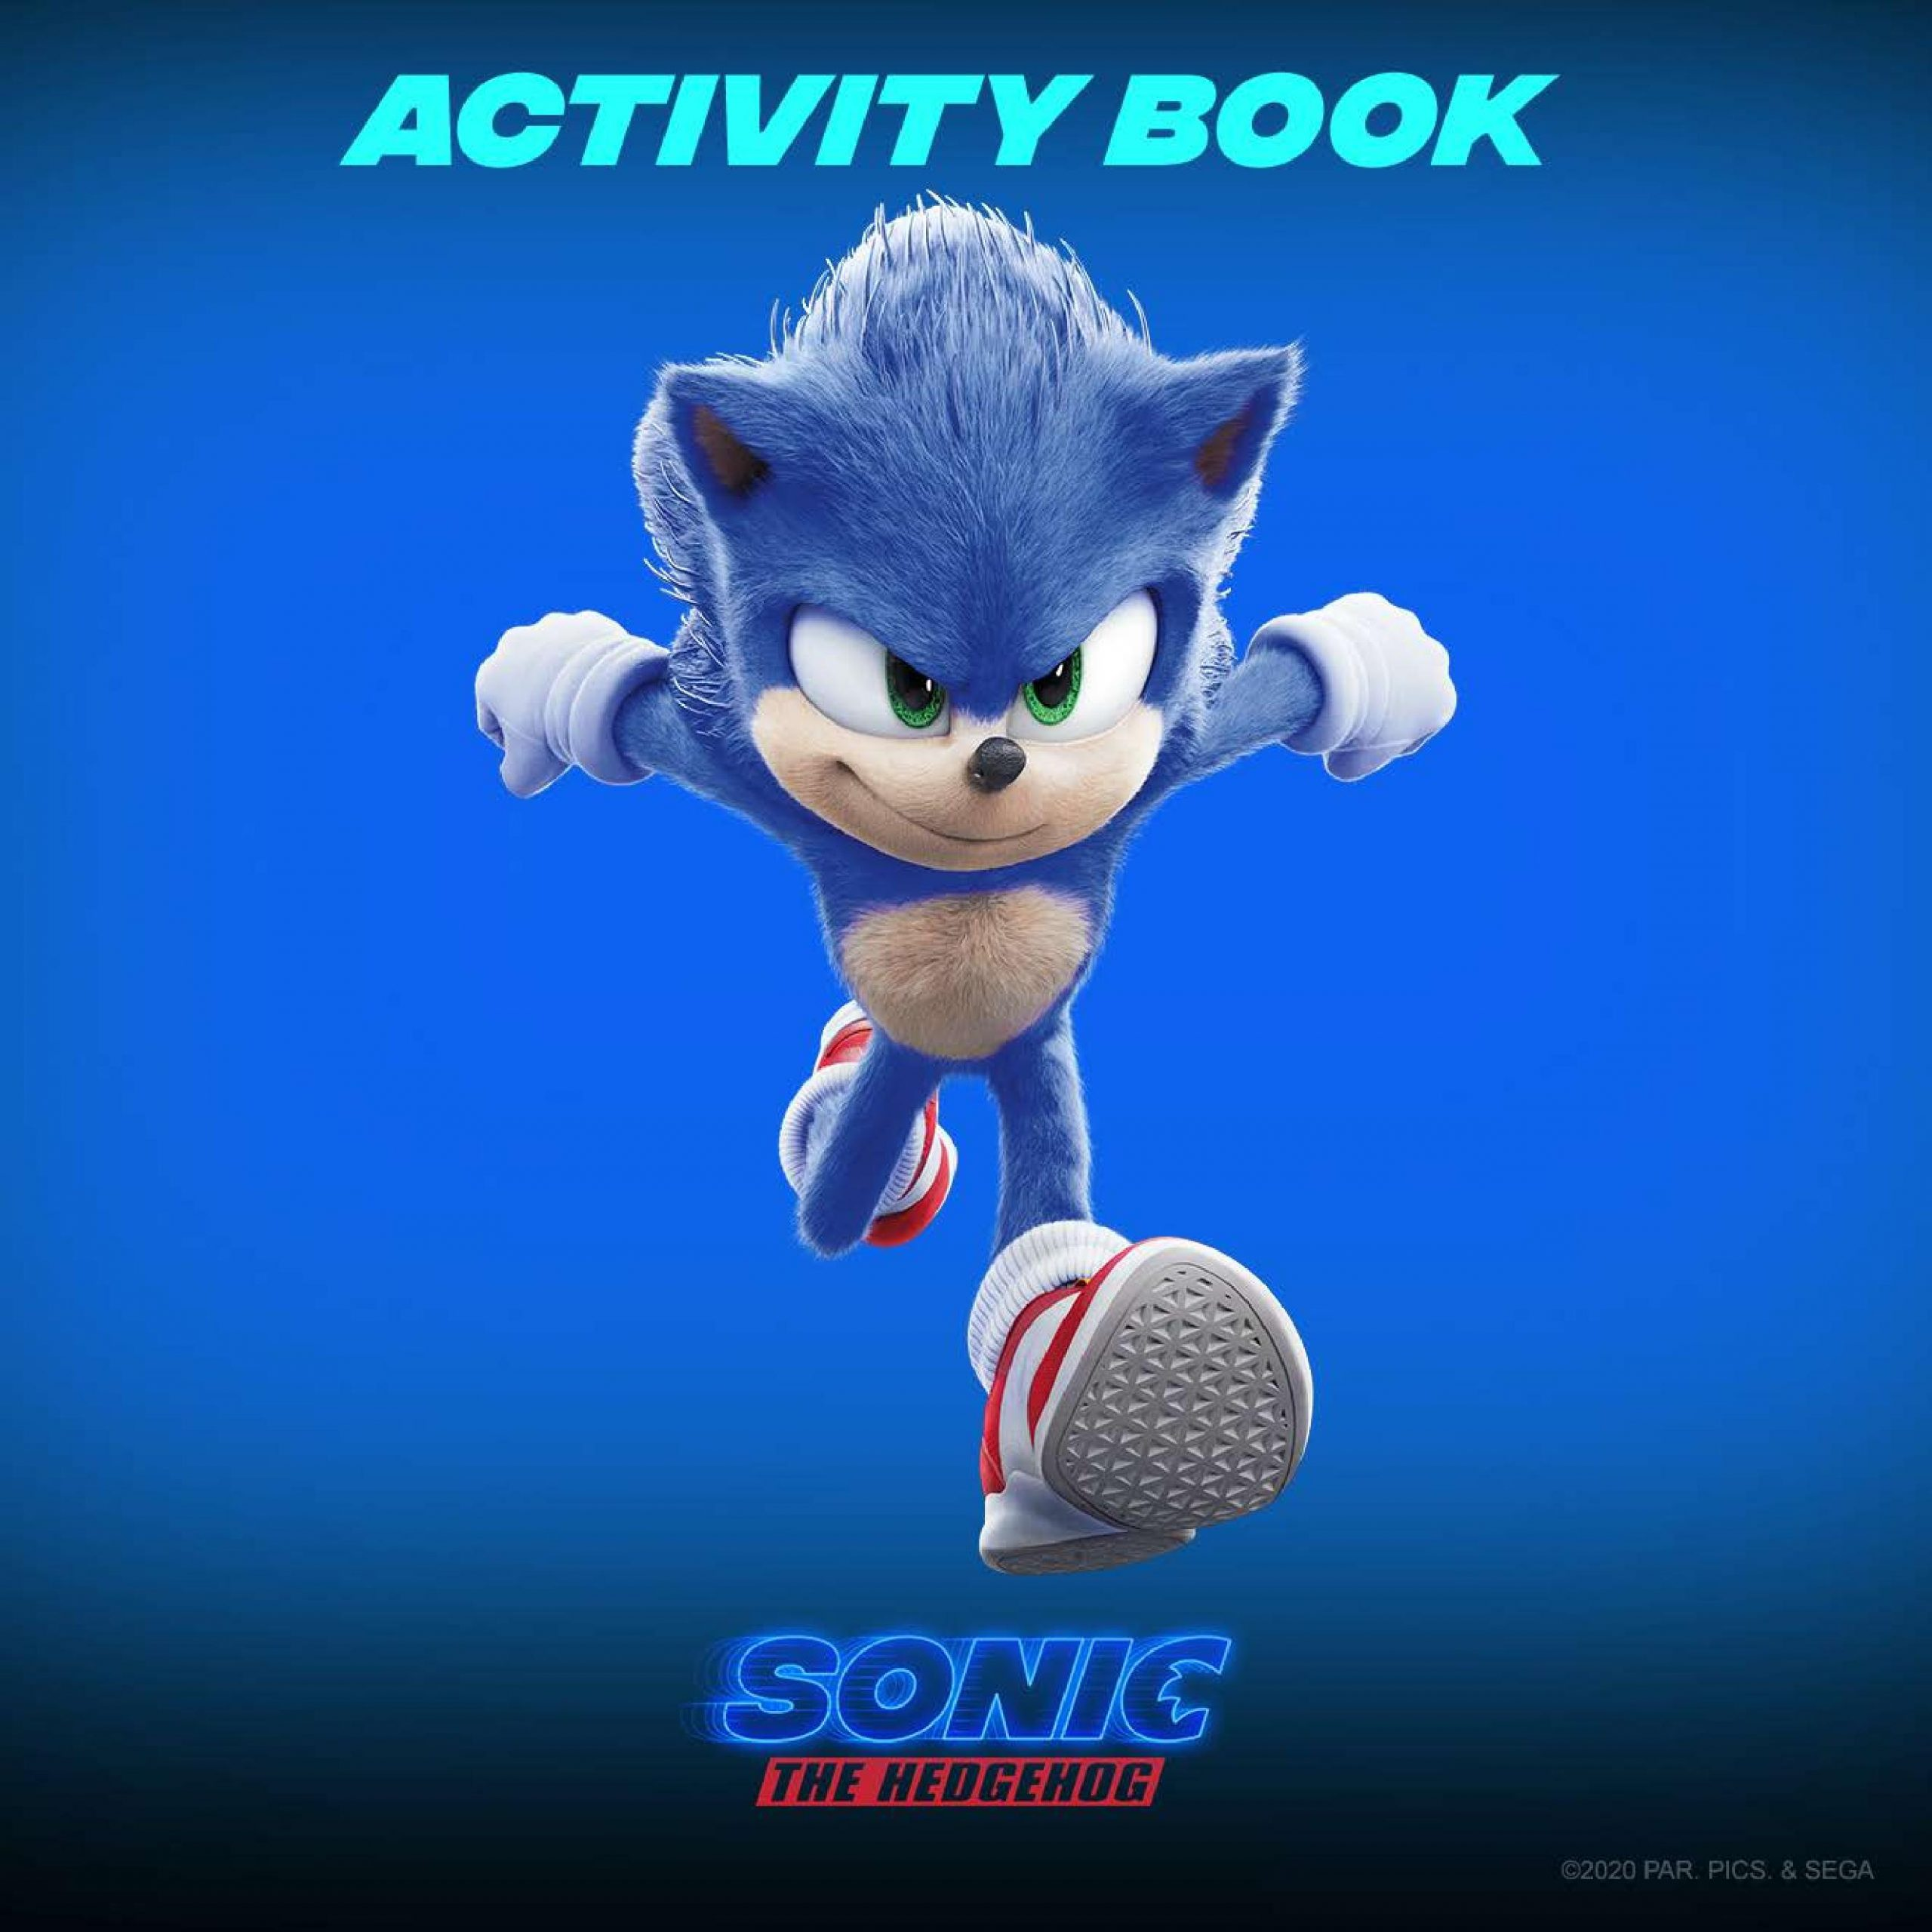 Sonic_Activity Pages-page-001